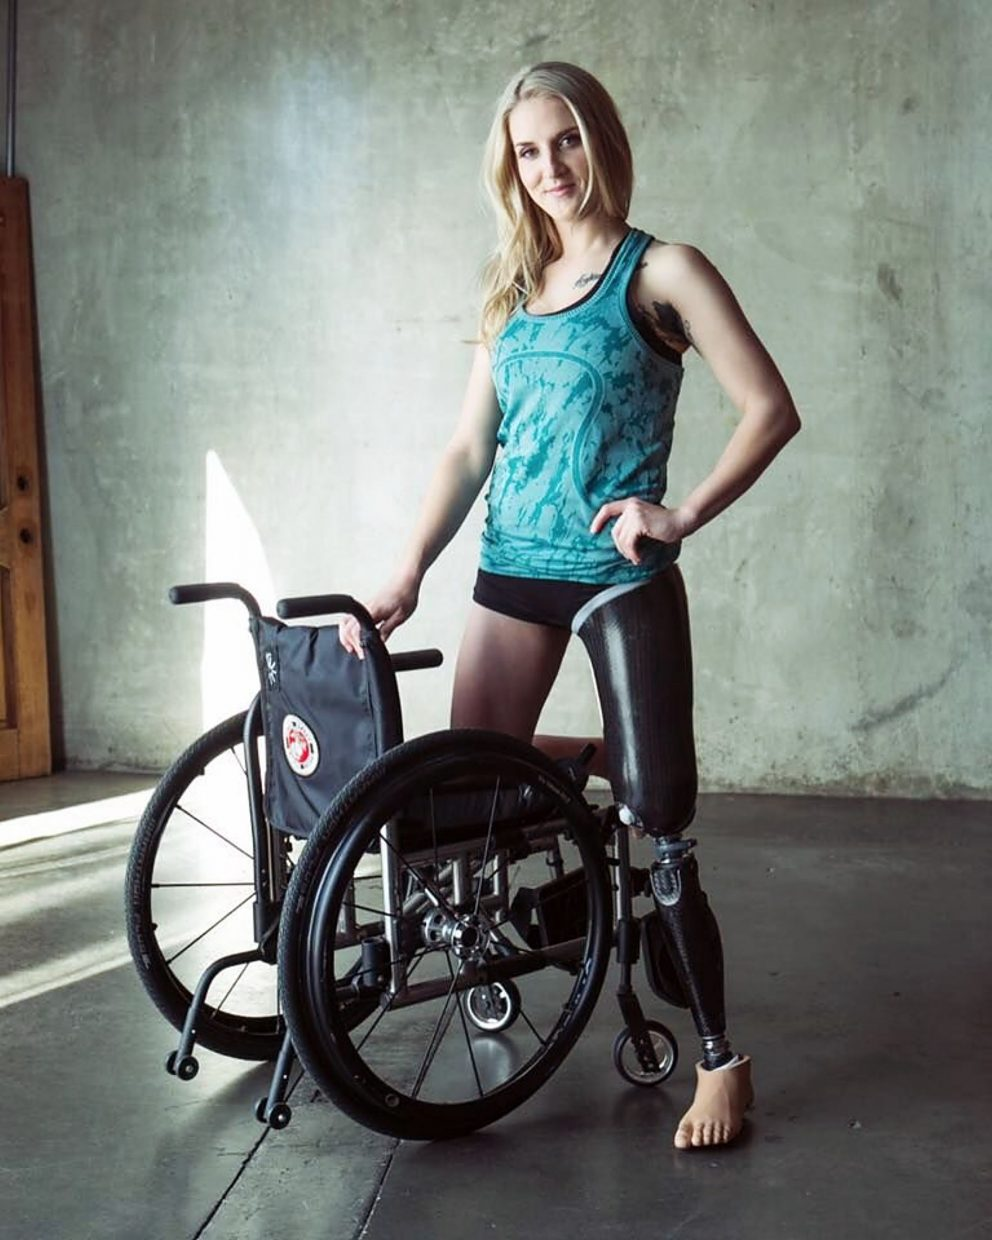 Former Marine Corps Sgt. Kirstie Ennis suffered numerous injuries while serving in Afghanistan in June 2012 — her second tour. Ennis, who eventually had to have part of her left leg amputated, is ranked eighth in the world in women's snowboard cross by the International Paralympic Committee.